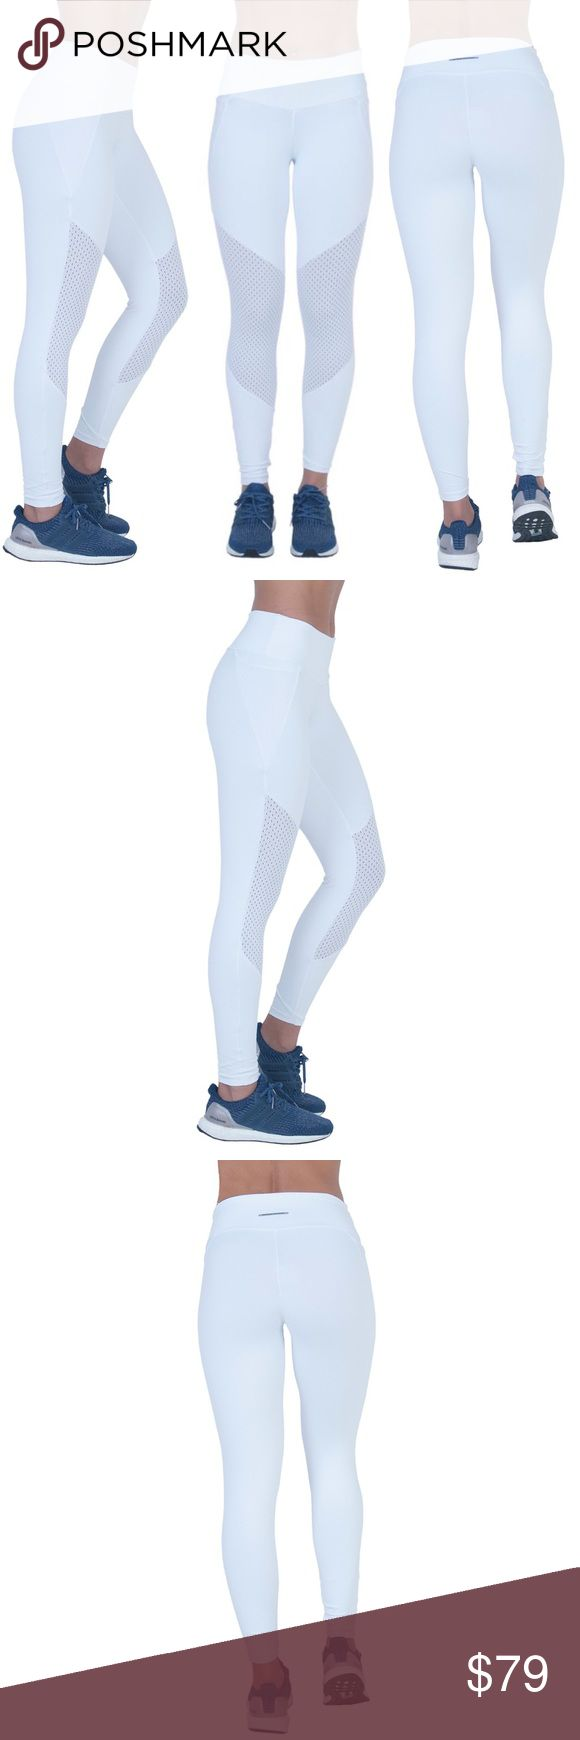 White Compression Mesh Brazilian Legging Solid color supplex leggings with mesh on side pockets and front leg panels on knee area. Wide waistband. Low rise. High performance. One size. The wide flat waistband smooths out your waist with comfort, preventing chafing, and rises slightly in the back to enhance coverage while your body is in motion. Our fabric comes with built-in UV SPF+50 protection technology, blocking both UVA and UVB damaging rays to keep your temperature under control and…